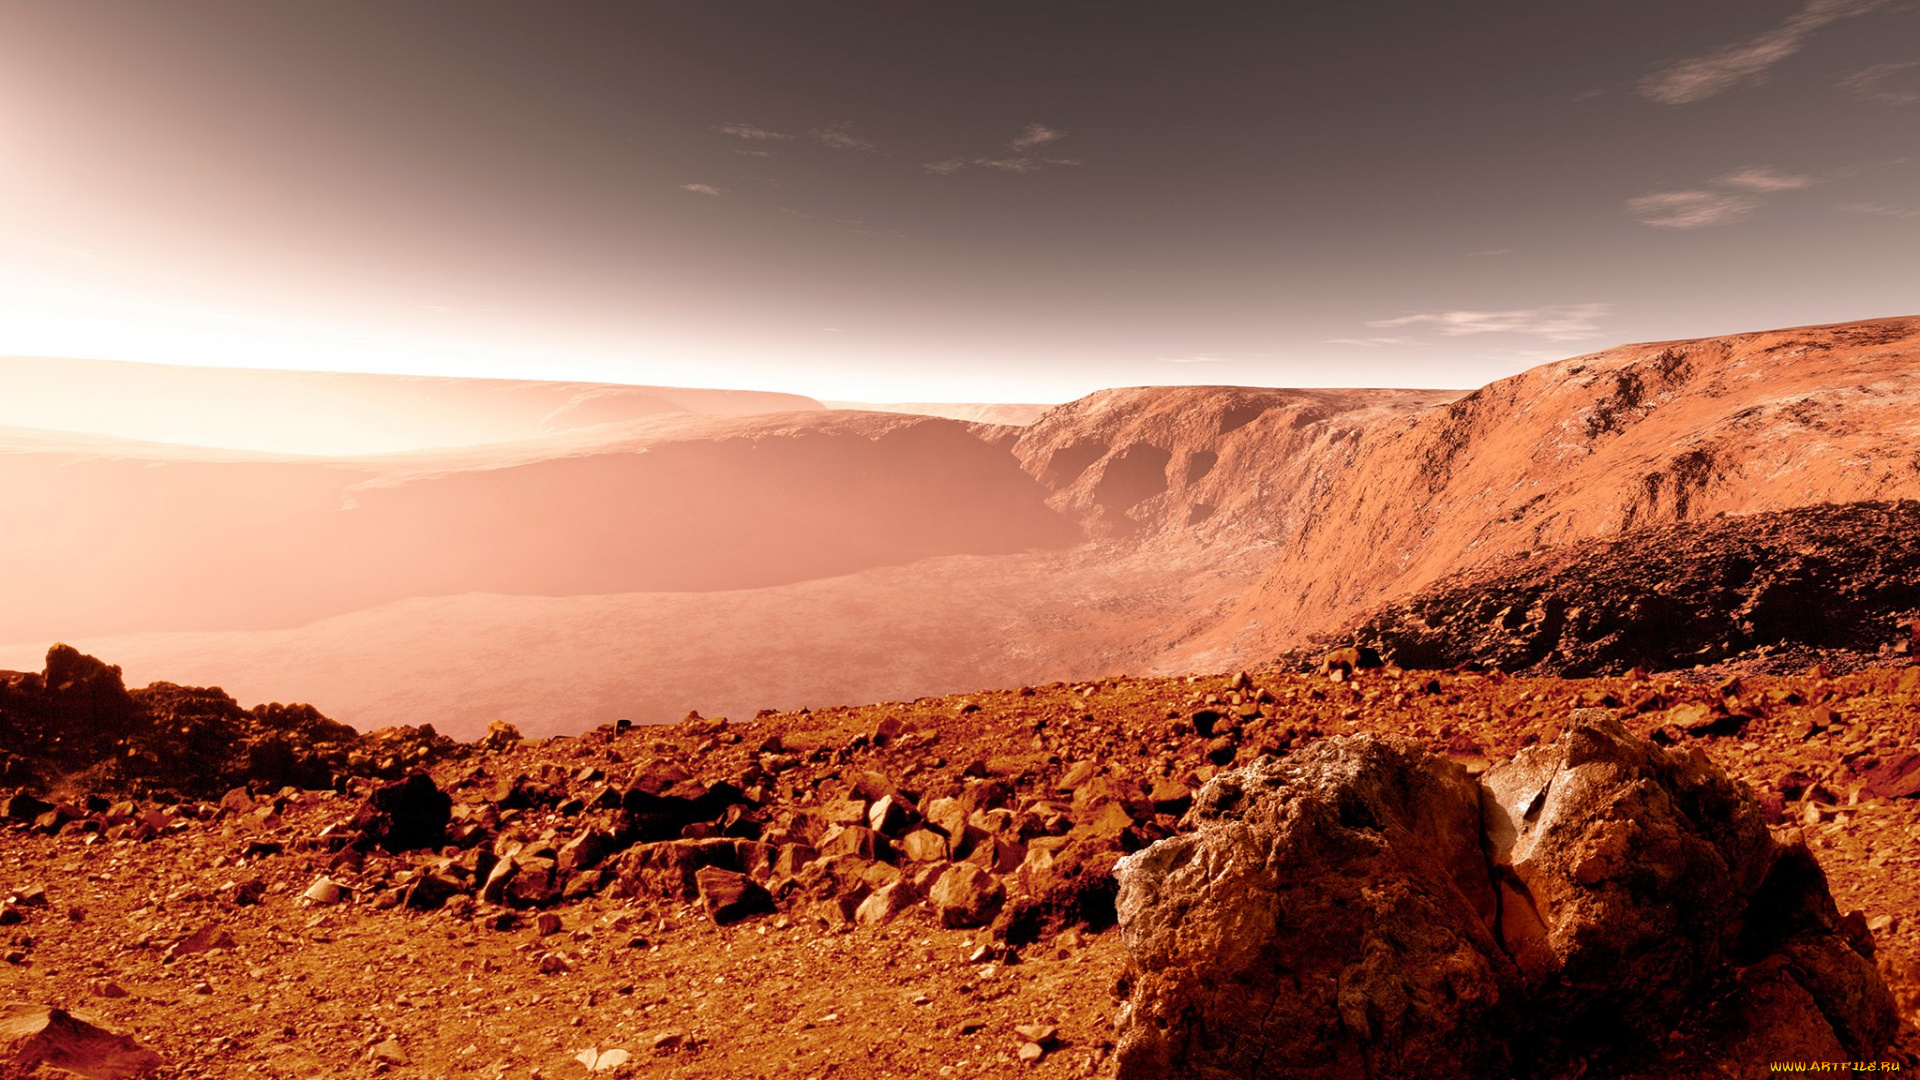 NASAs realtime portal for Mars exploration featuring the latest news images and discoveries from the Red Planet